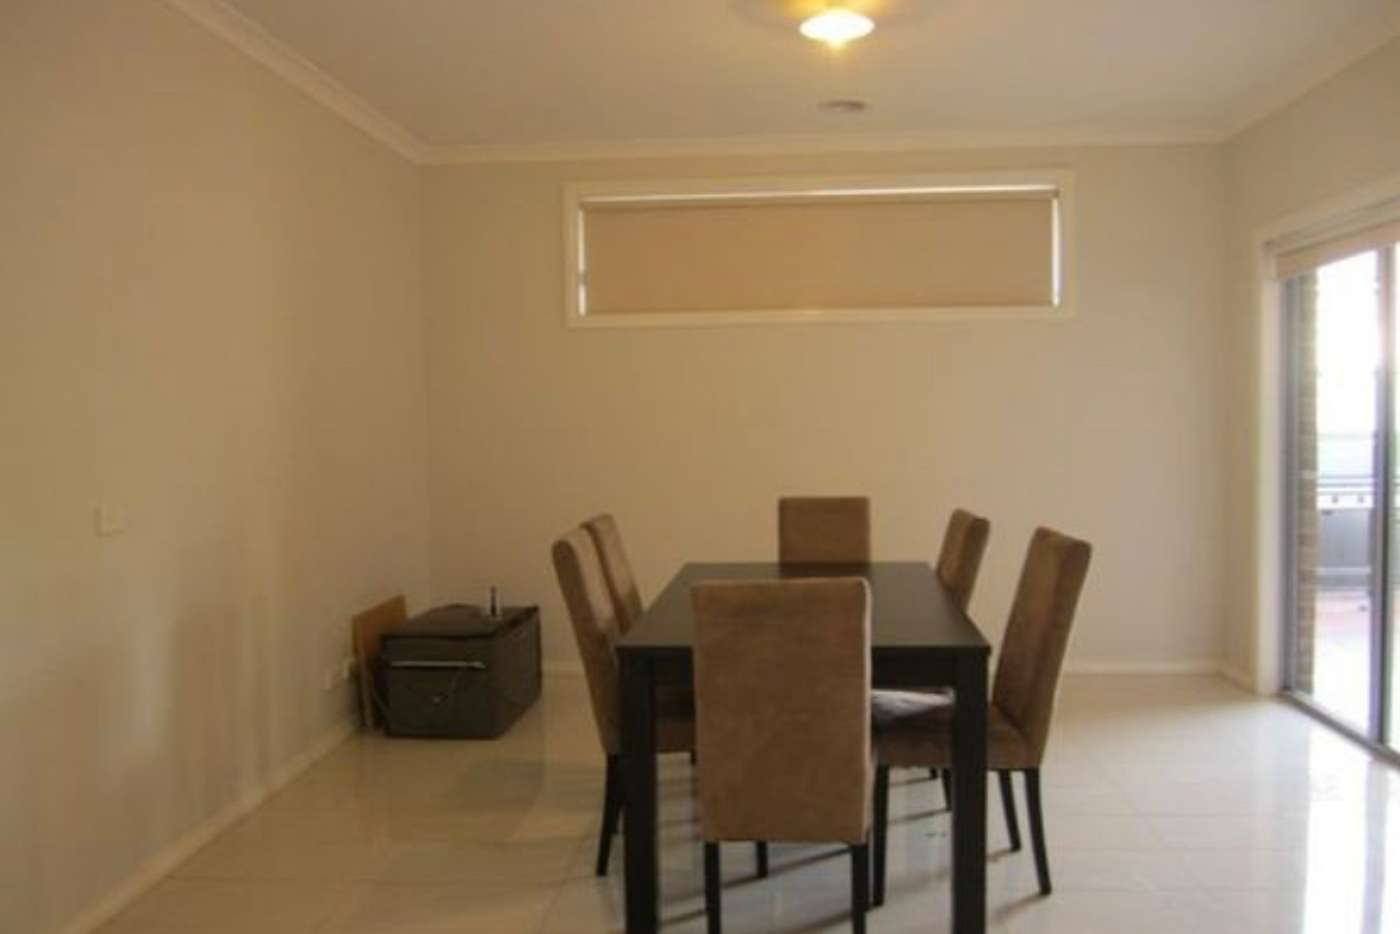 Sixth view of Homely house listing, 872 Tarneit Road, Tarneit VIC 3029